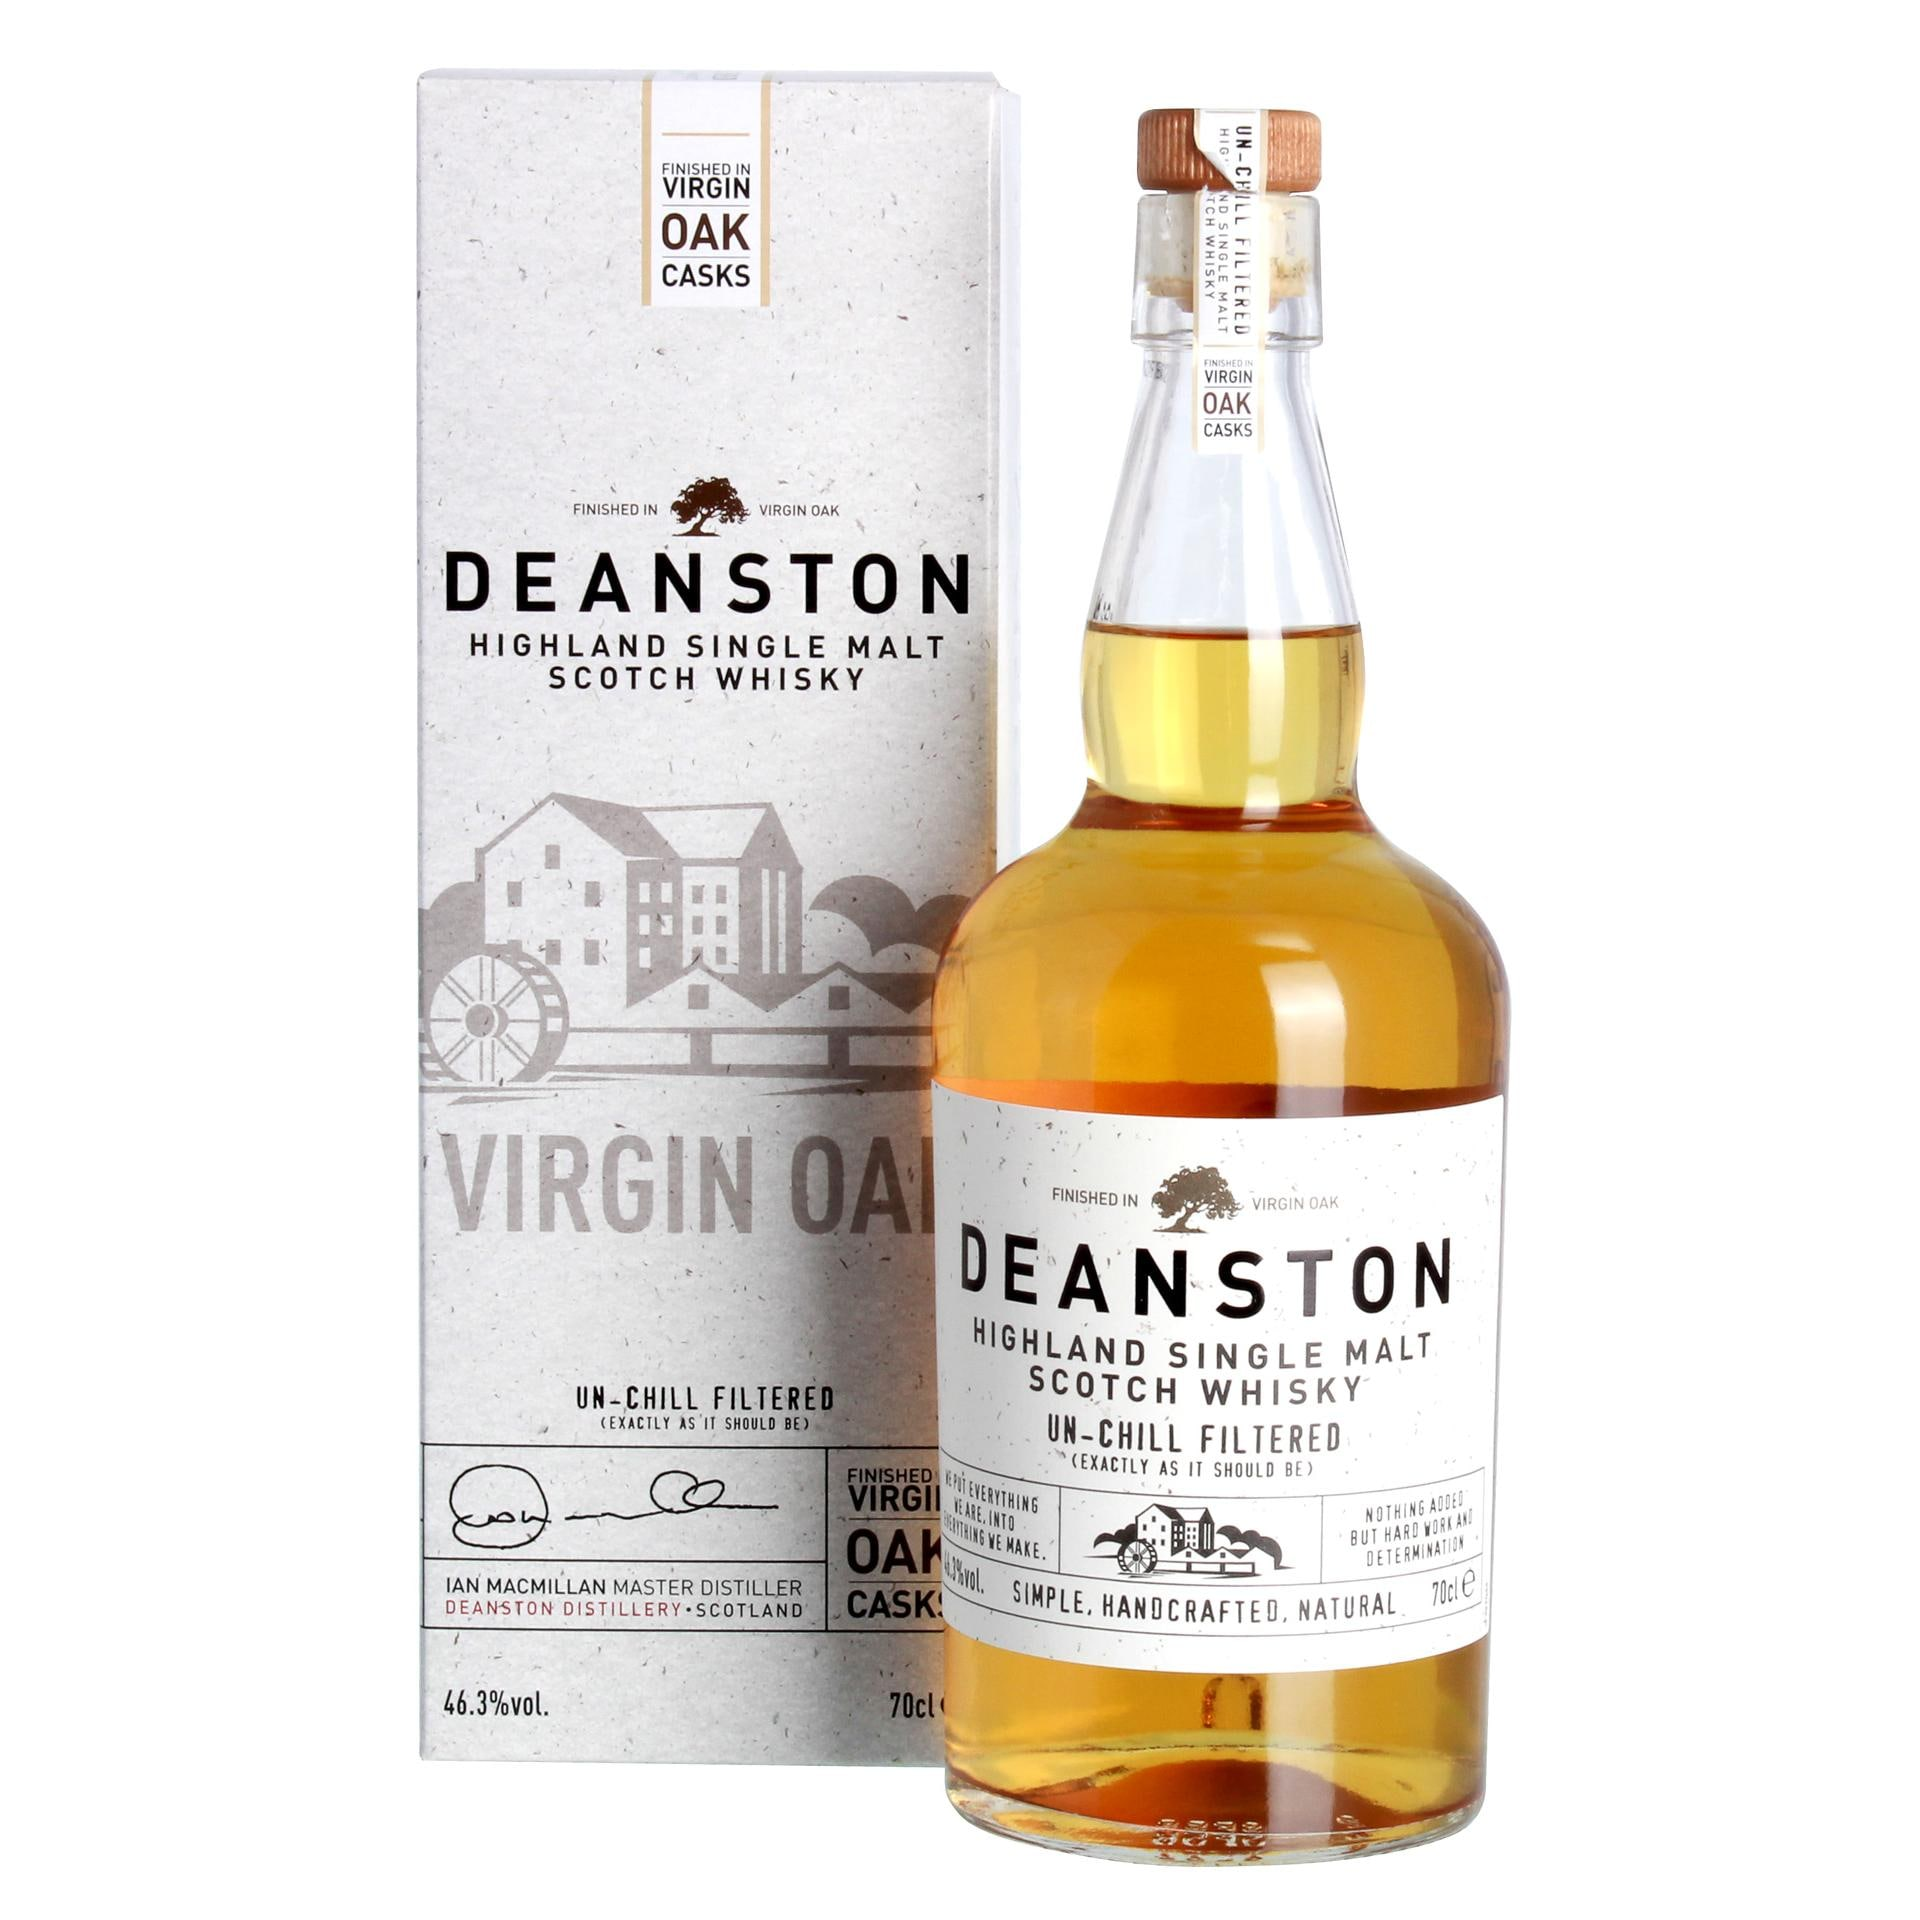 Deanston Highland Single Malt Scotch Whisky 0,7l